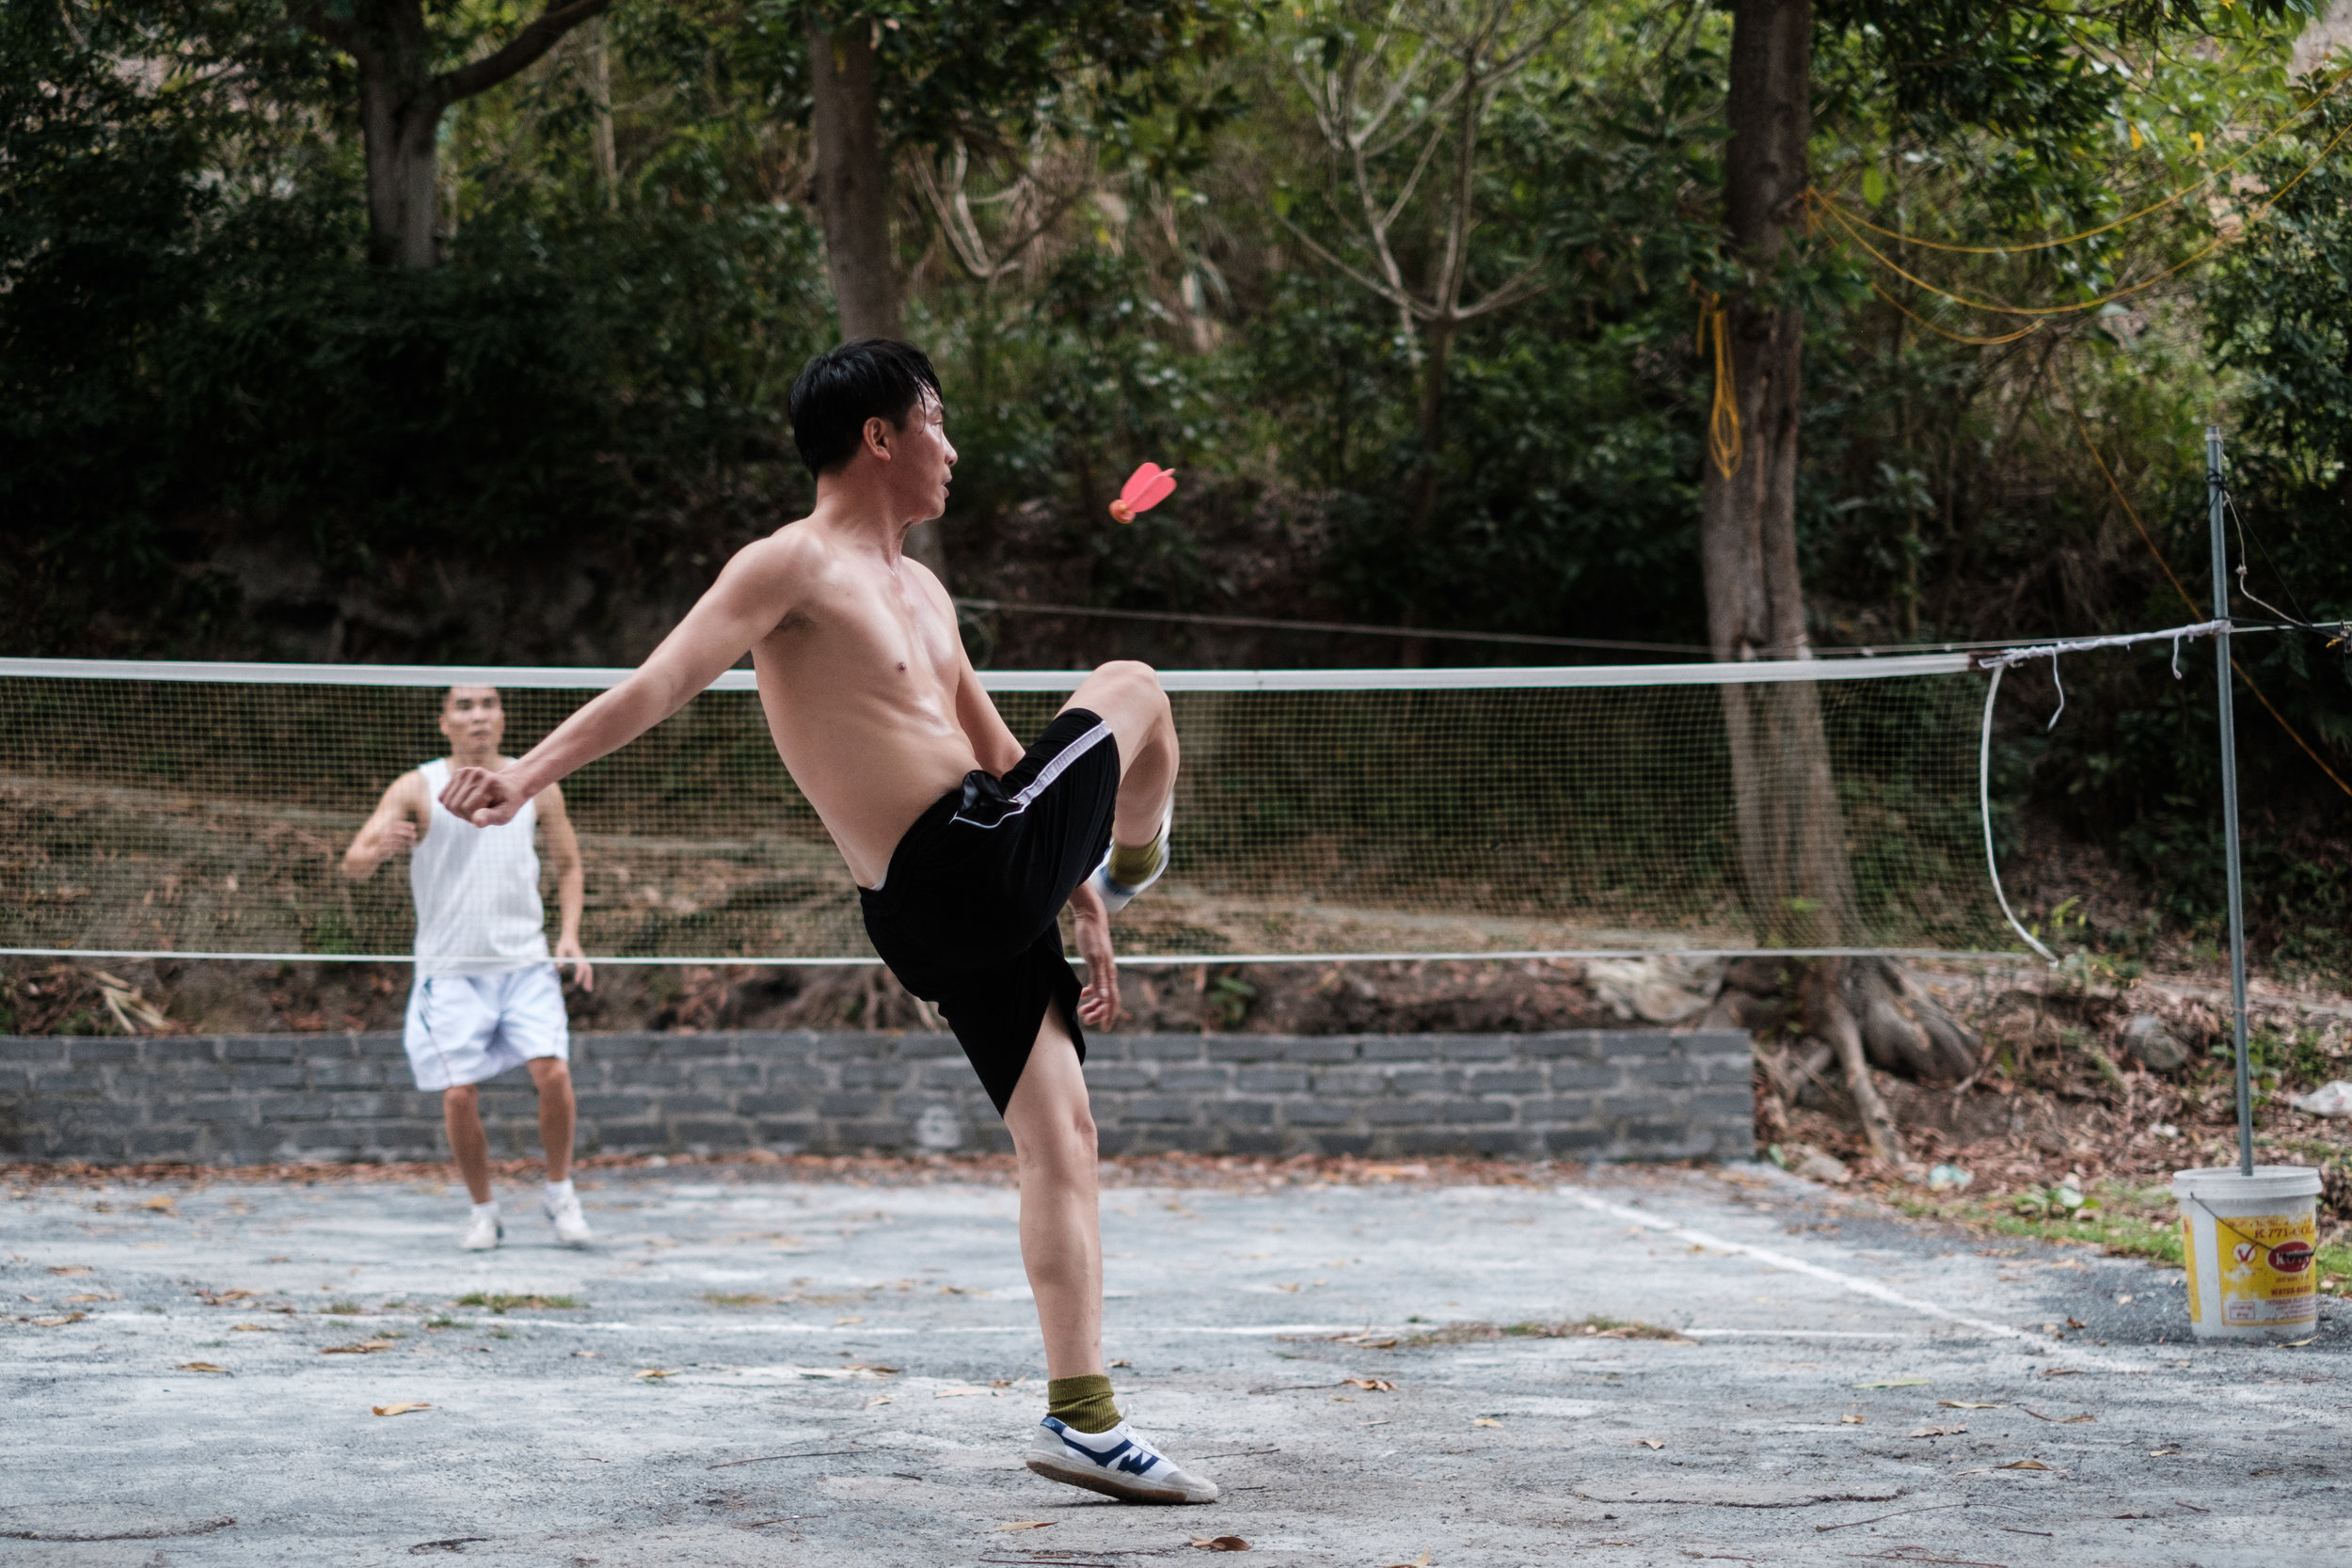 These skilled foot badminton players let me photograph them in action.